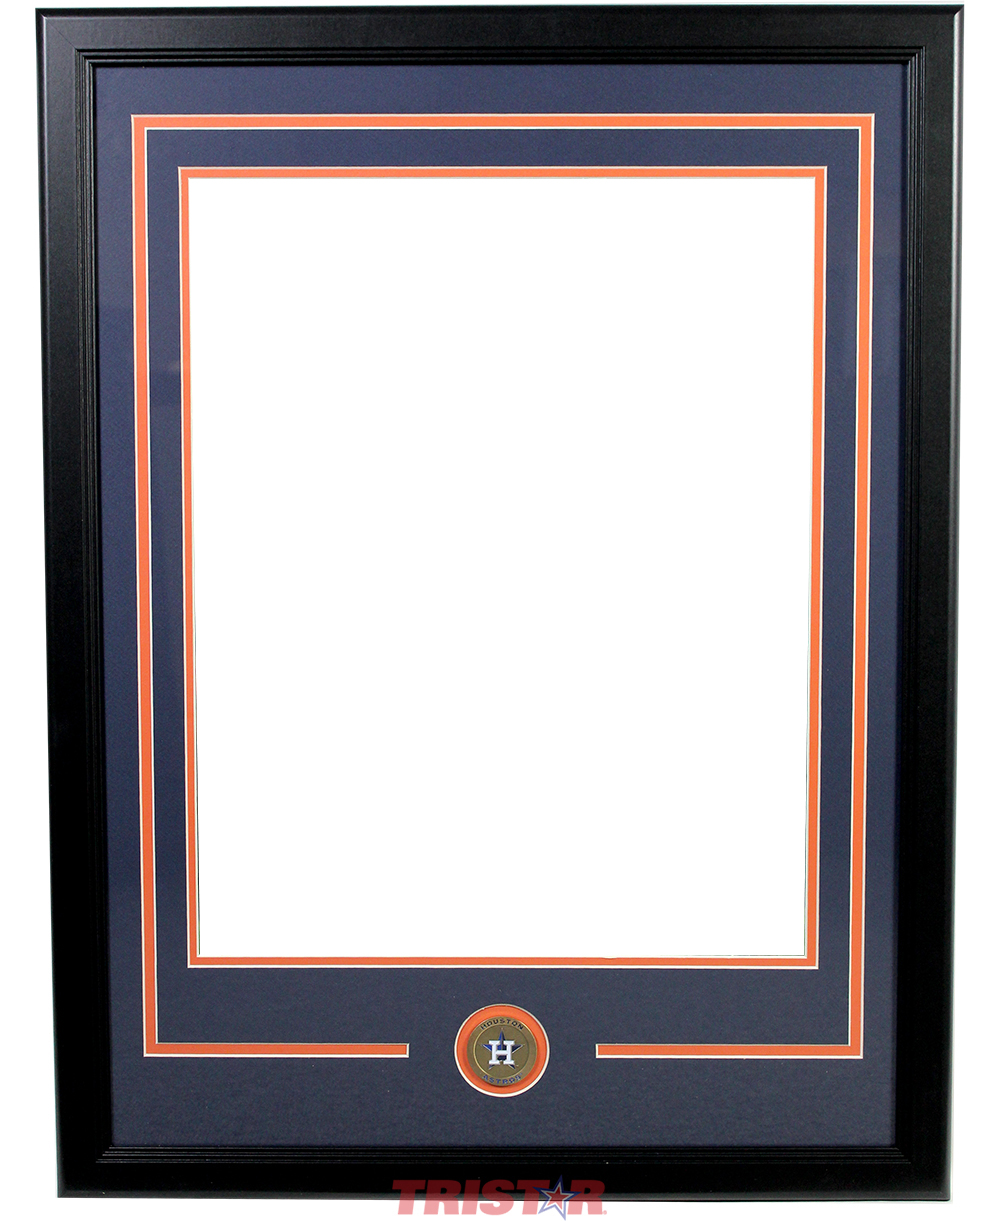 16x20 Double Matted Framing with Houston Astros Coin